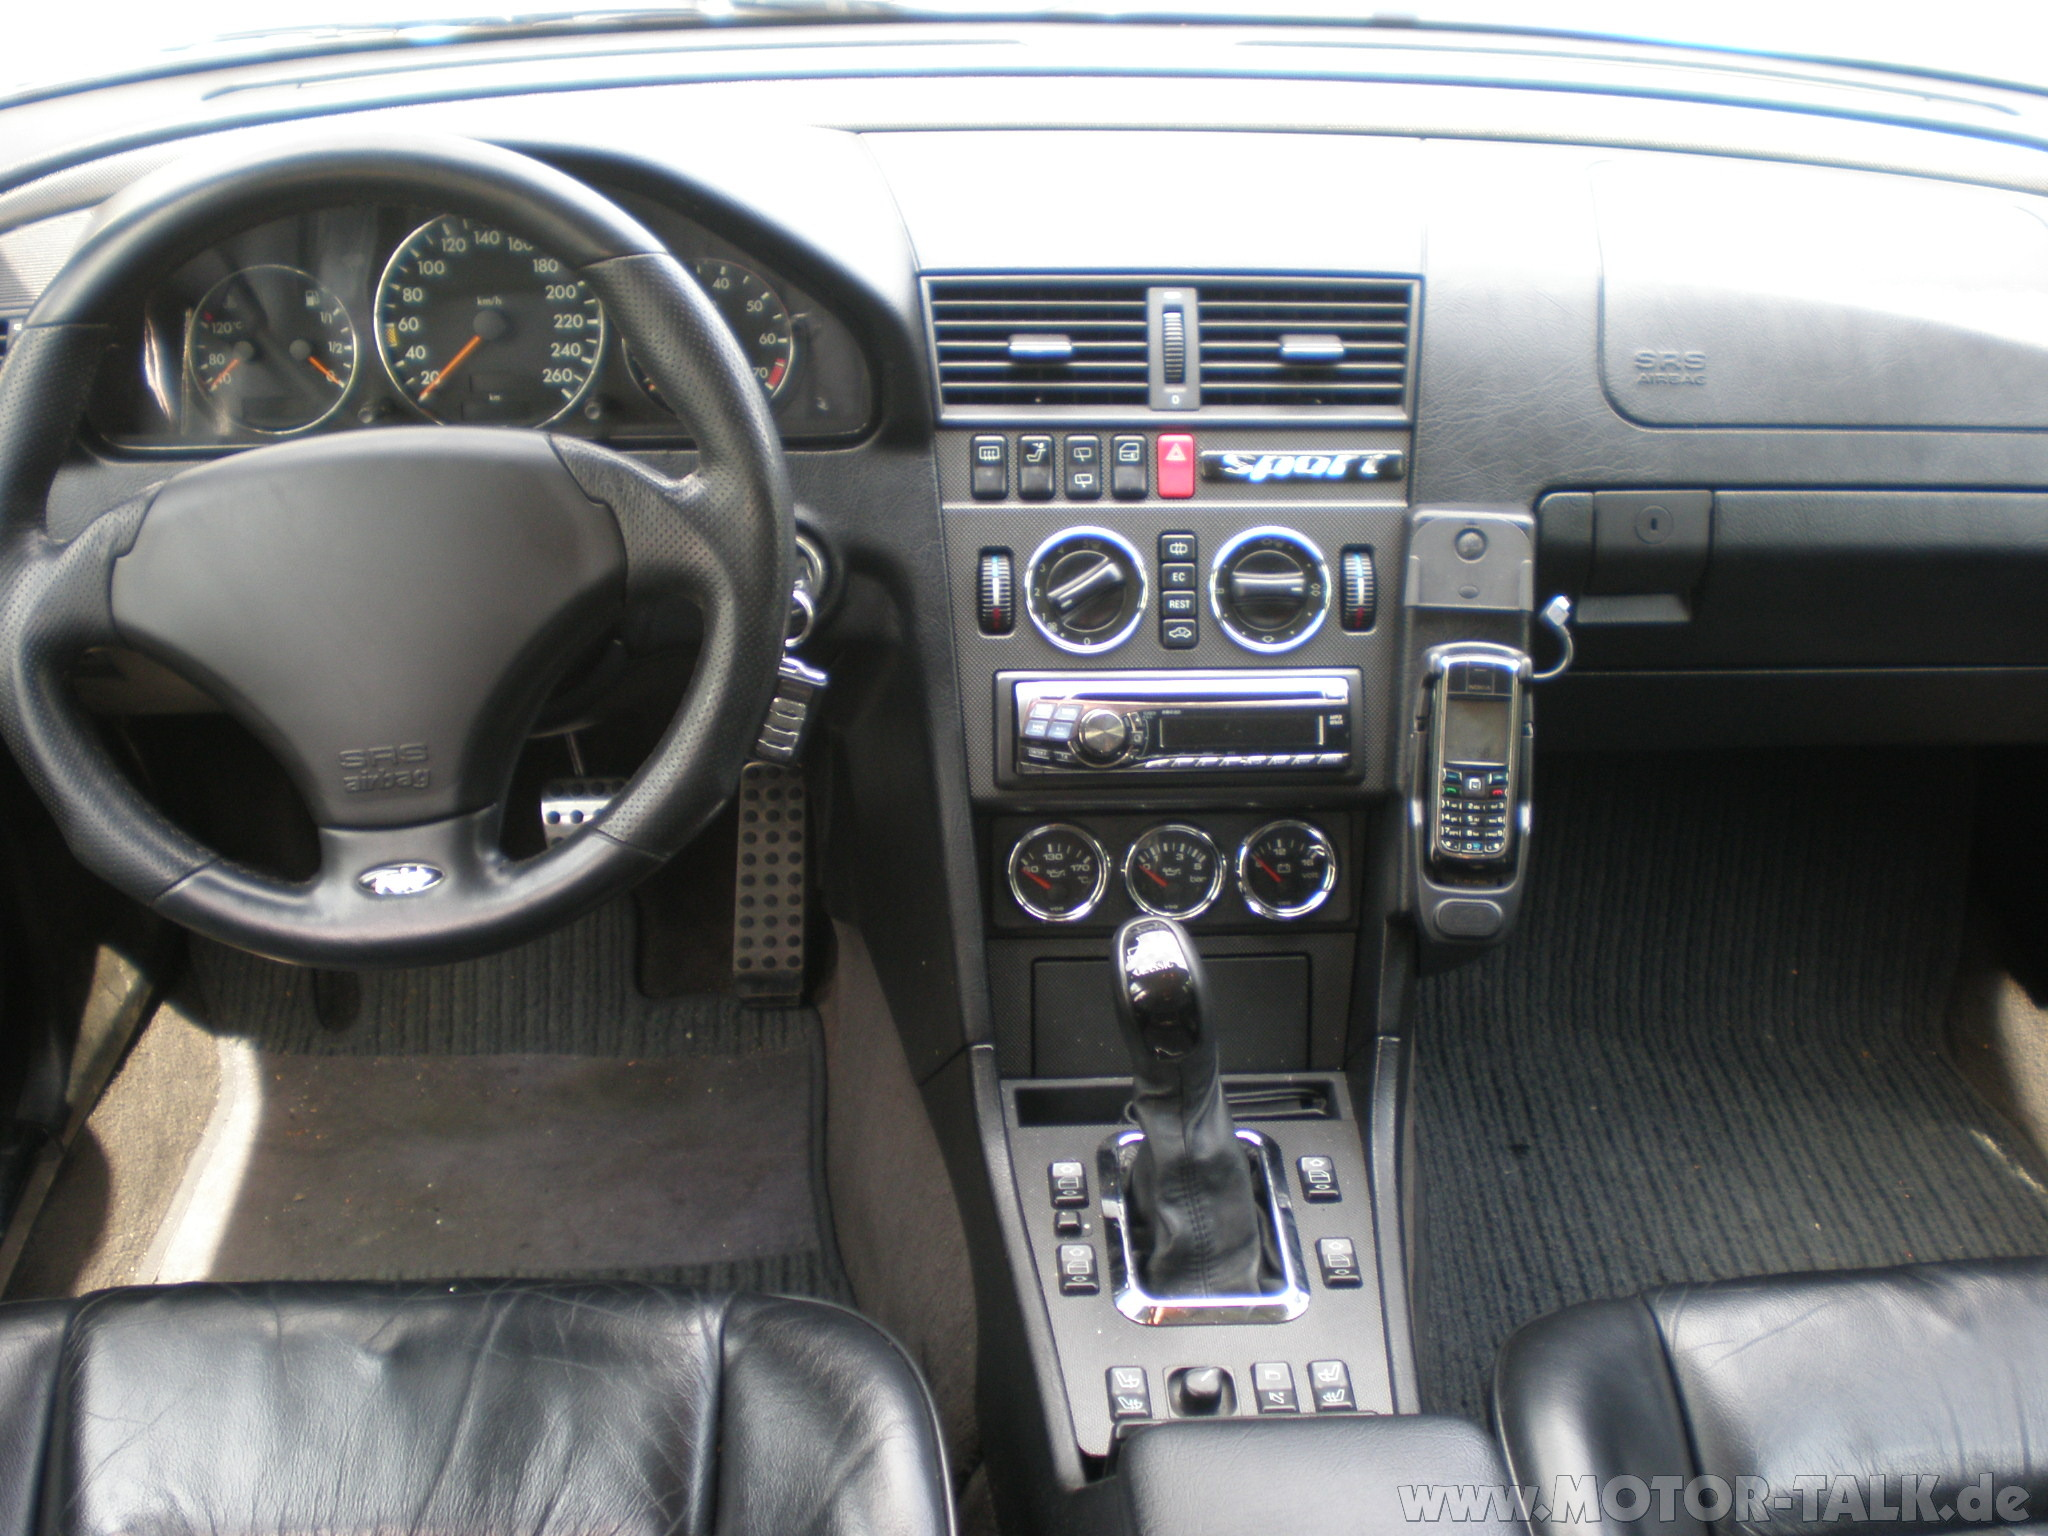 Interieur mercedes c klasse w202 280 testberichte for Interieur mercedes c klasse